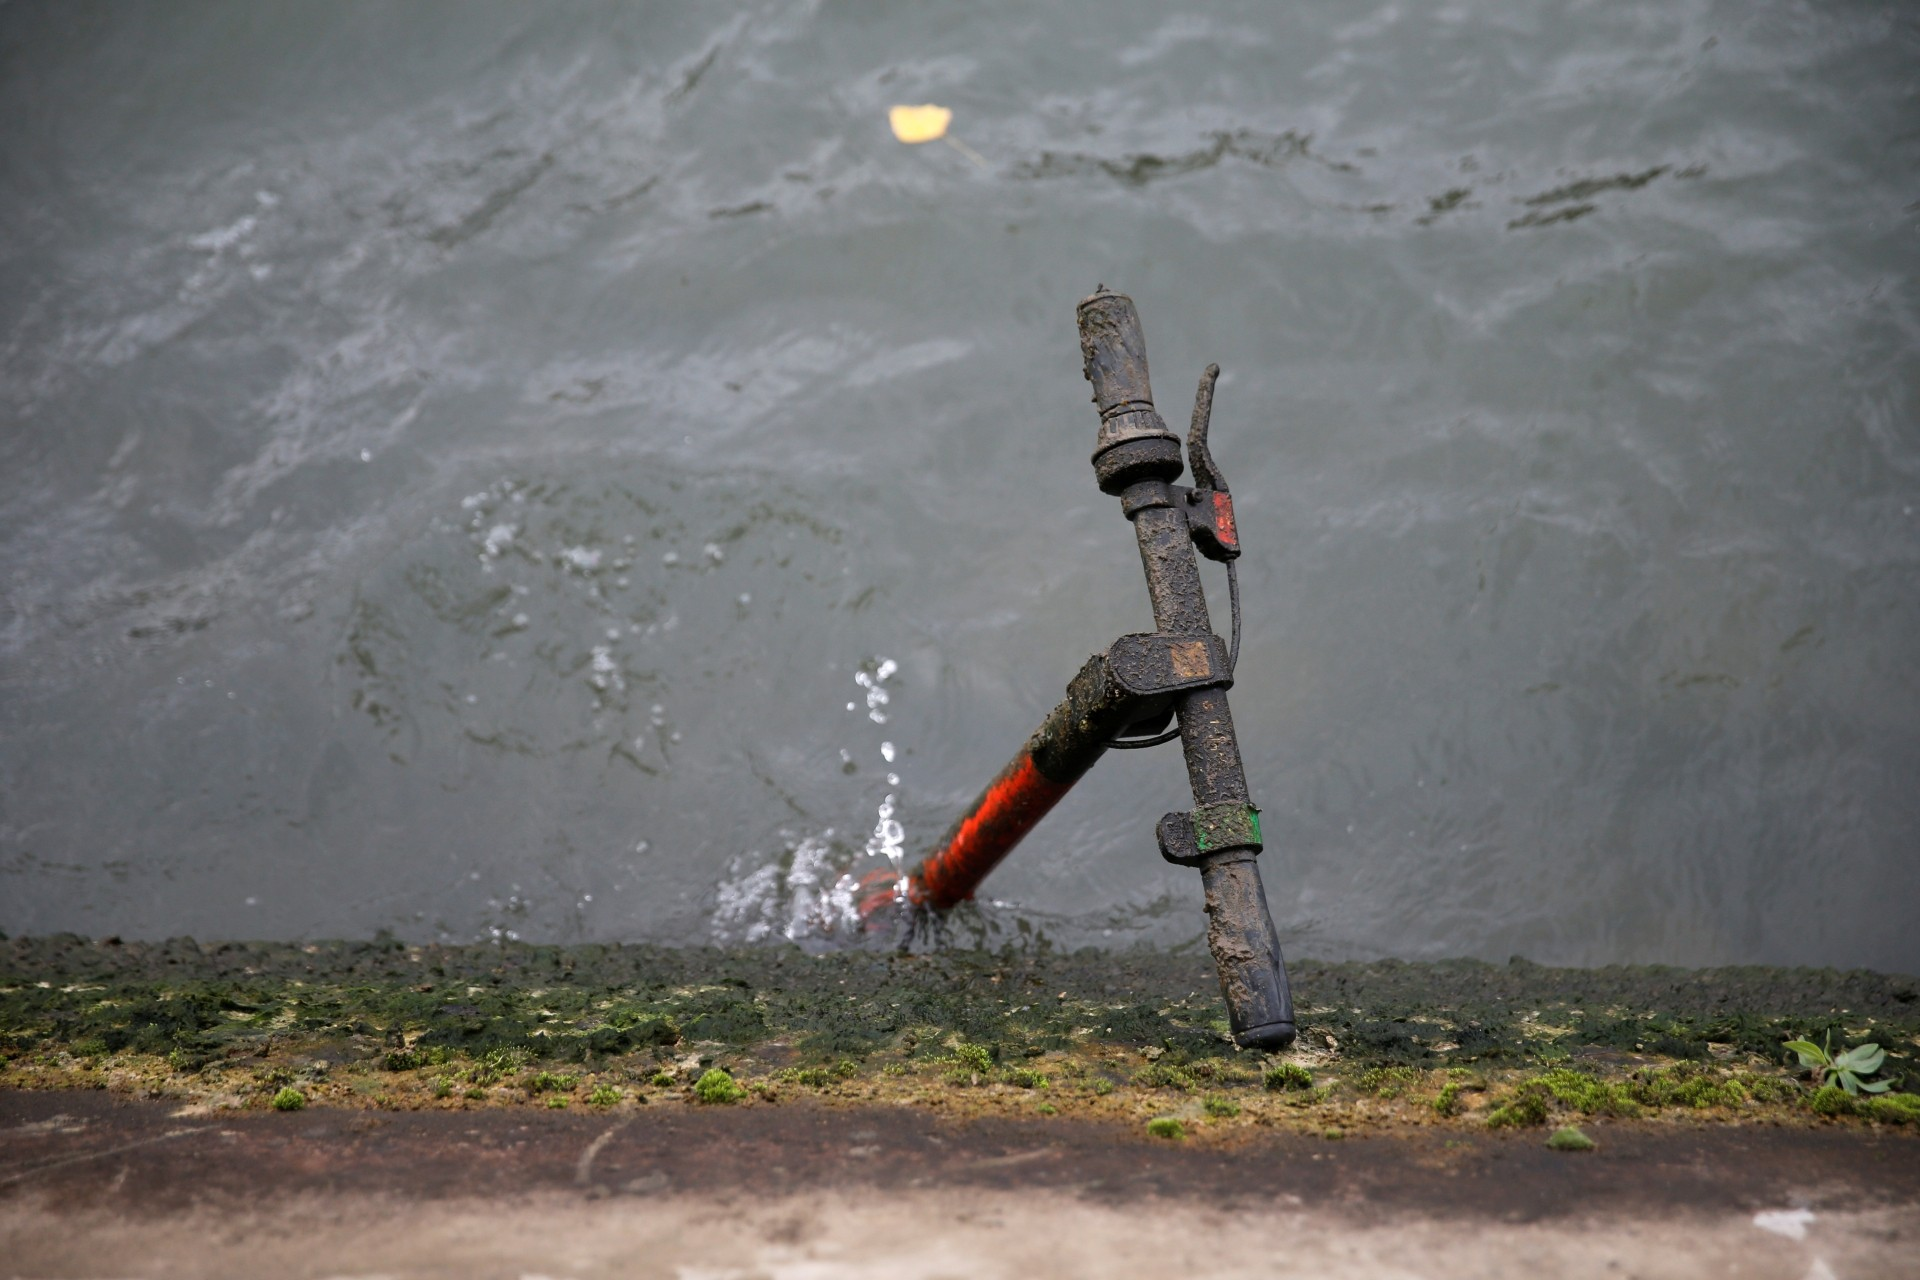 An abandoned electric scooter is seen in the River Seine.